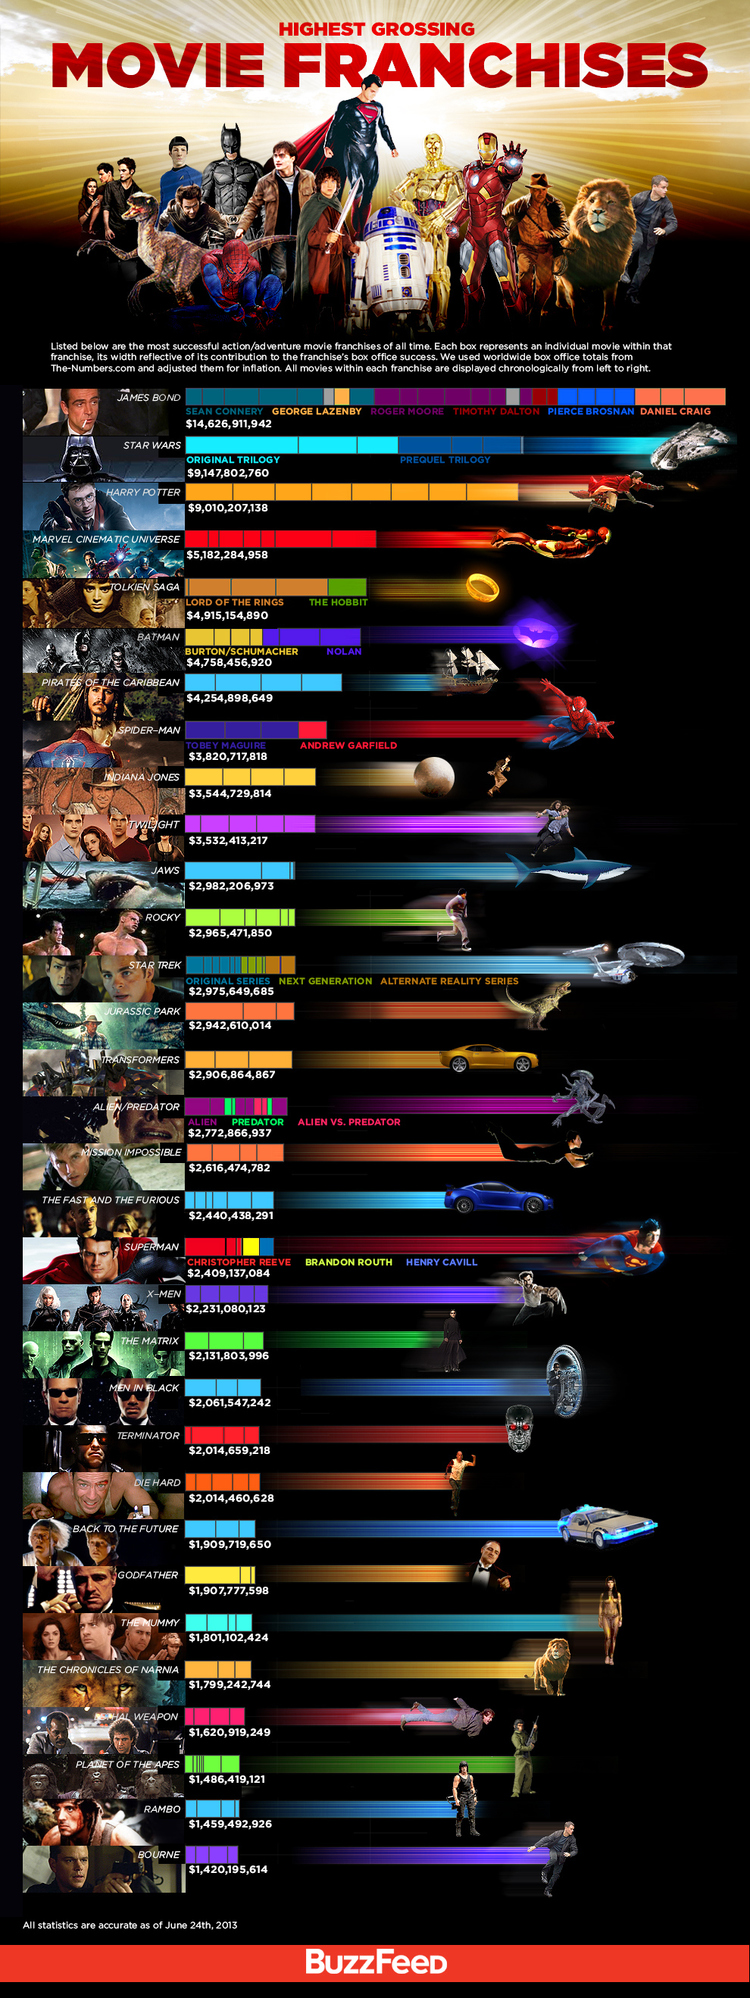 James Bond, Star Wars, Harry Potter, Jason Bourne, Marvel Cinematic Universe, Tolkien Saga, Batman, Pirates of the Caribbean, Spider-Man, Indiana Jones, Twilight, Jaws, Rocky, Star Trek, Jurassic Park, Transformers, Aliens, Predator, Mission Impossible, Fast and the Furious, X-Men, Matrix, Men in Black, Terminator, Die Hard, Back to the Future, Narnia, Godfather, The Mummy, Lethal Weapon, Planet of the Apes, Rambo